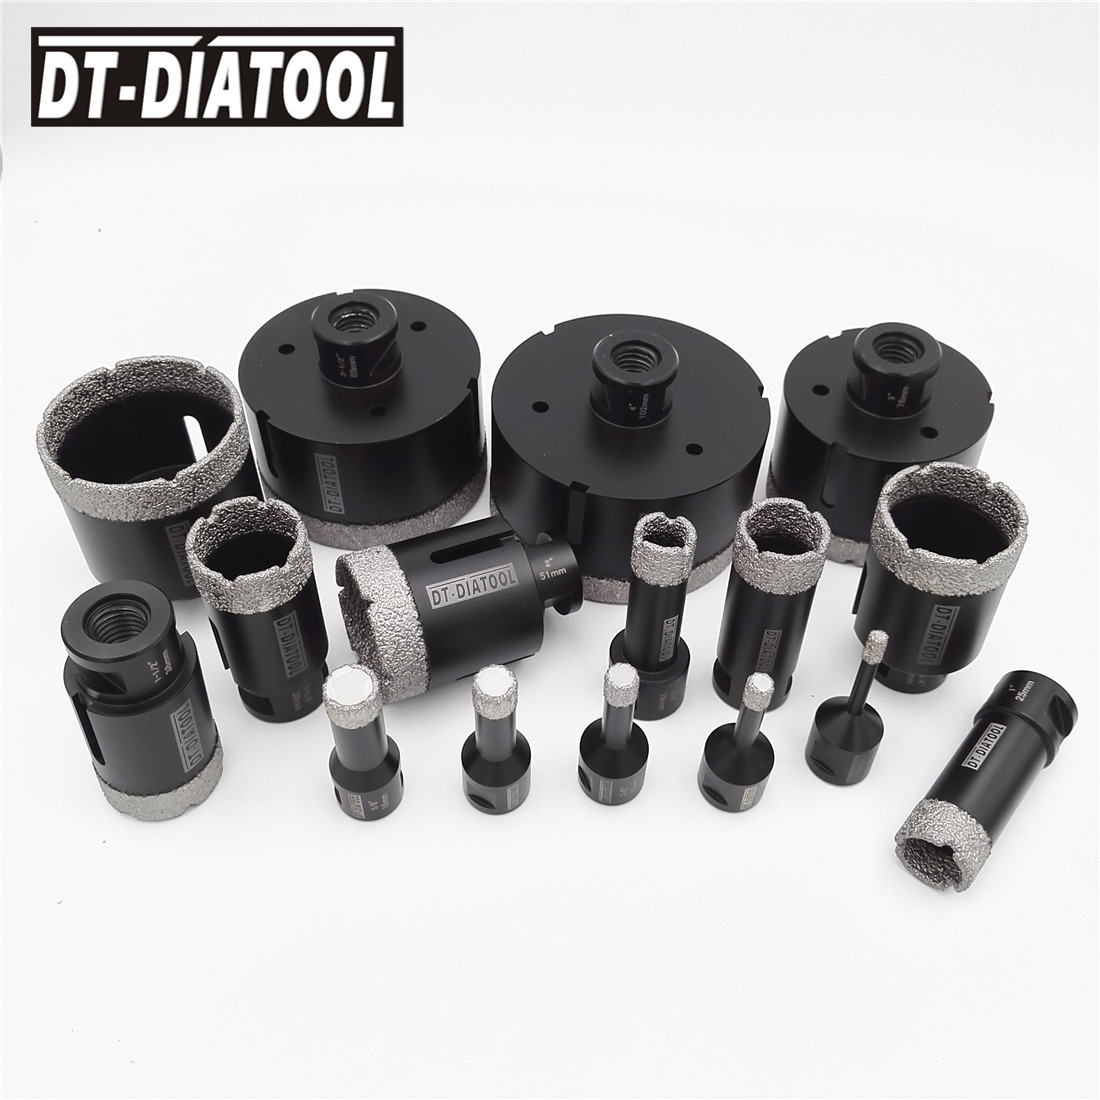 Vacuum Brazed Diamond Dry Drill core Bits 5/8-11 Thread Drilling bits hole saw Diameter 6mm to 102MM for tile marble granite maiyet платье до колена